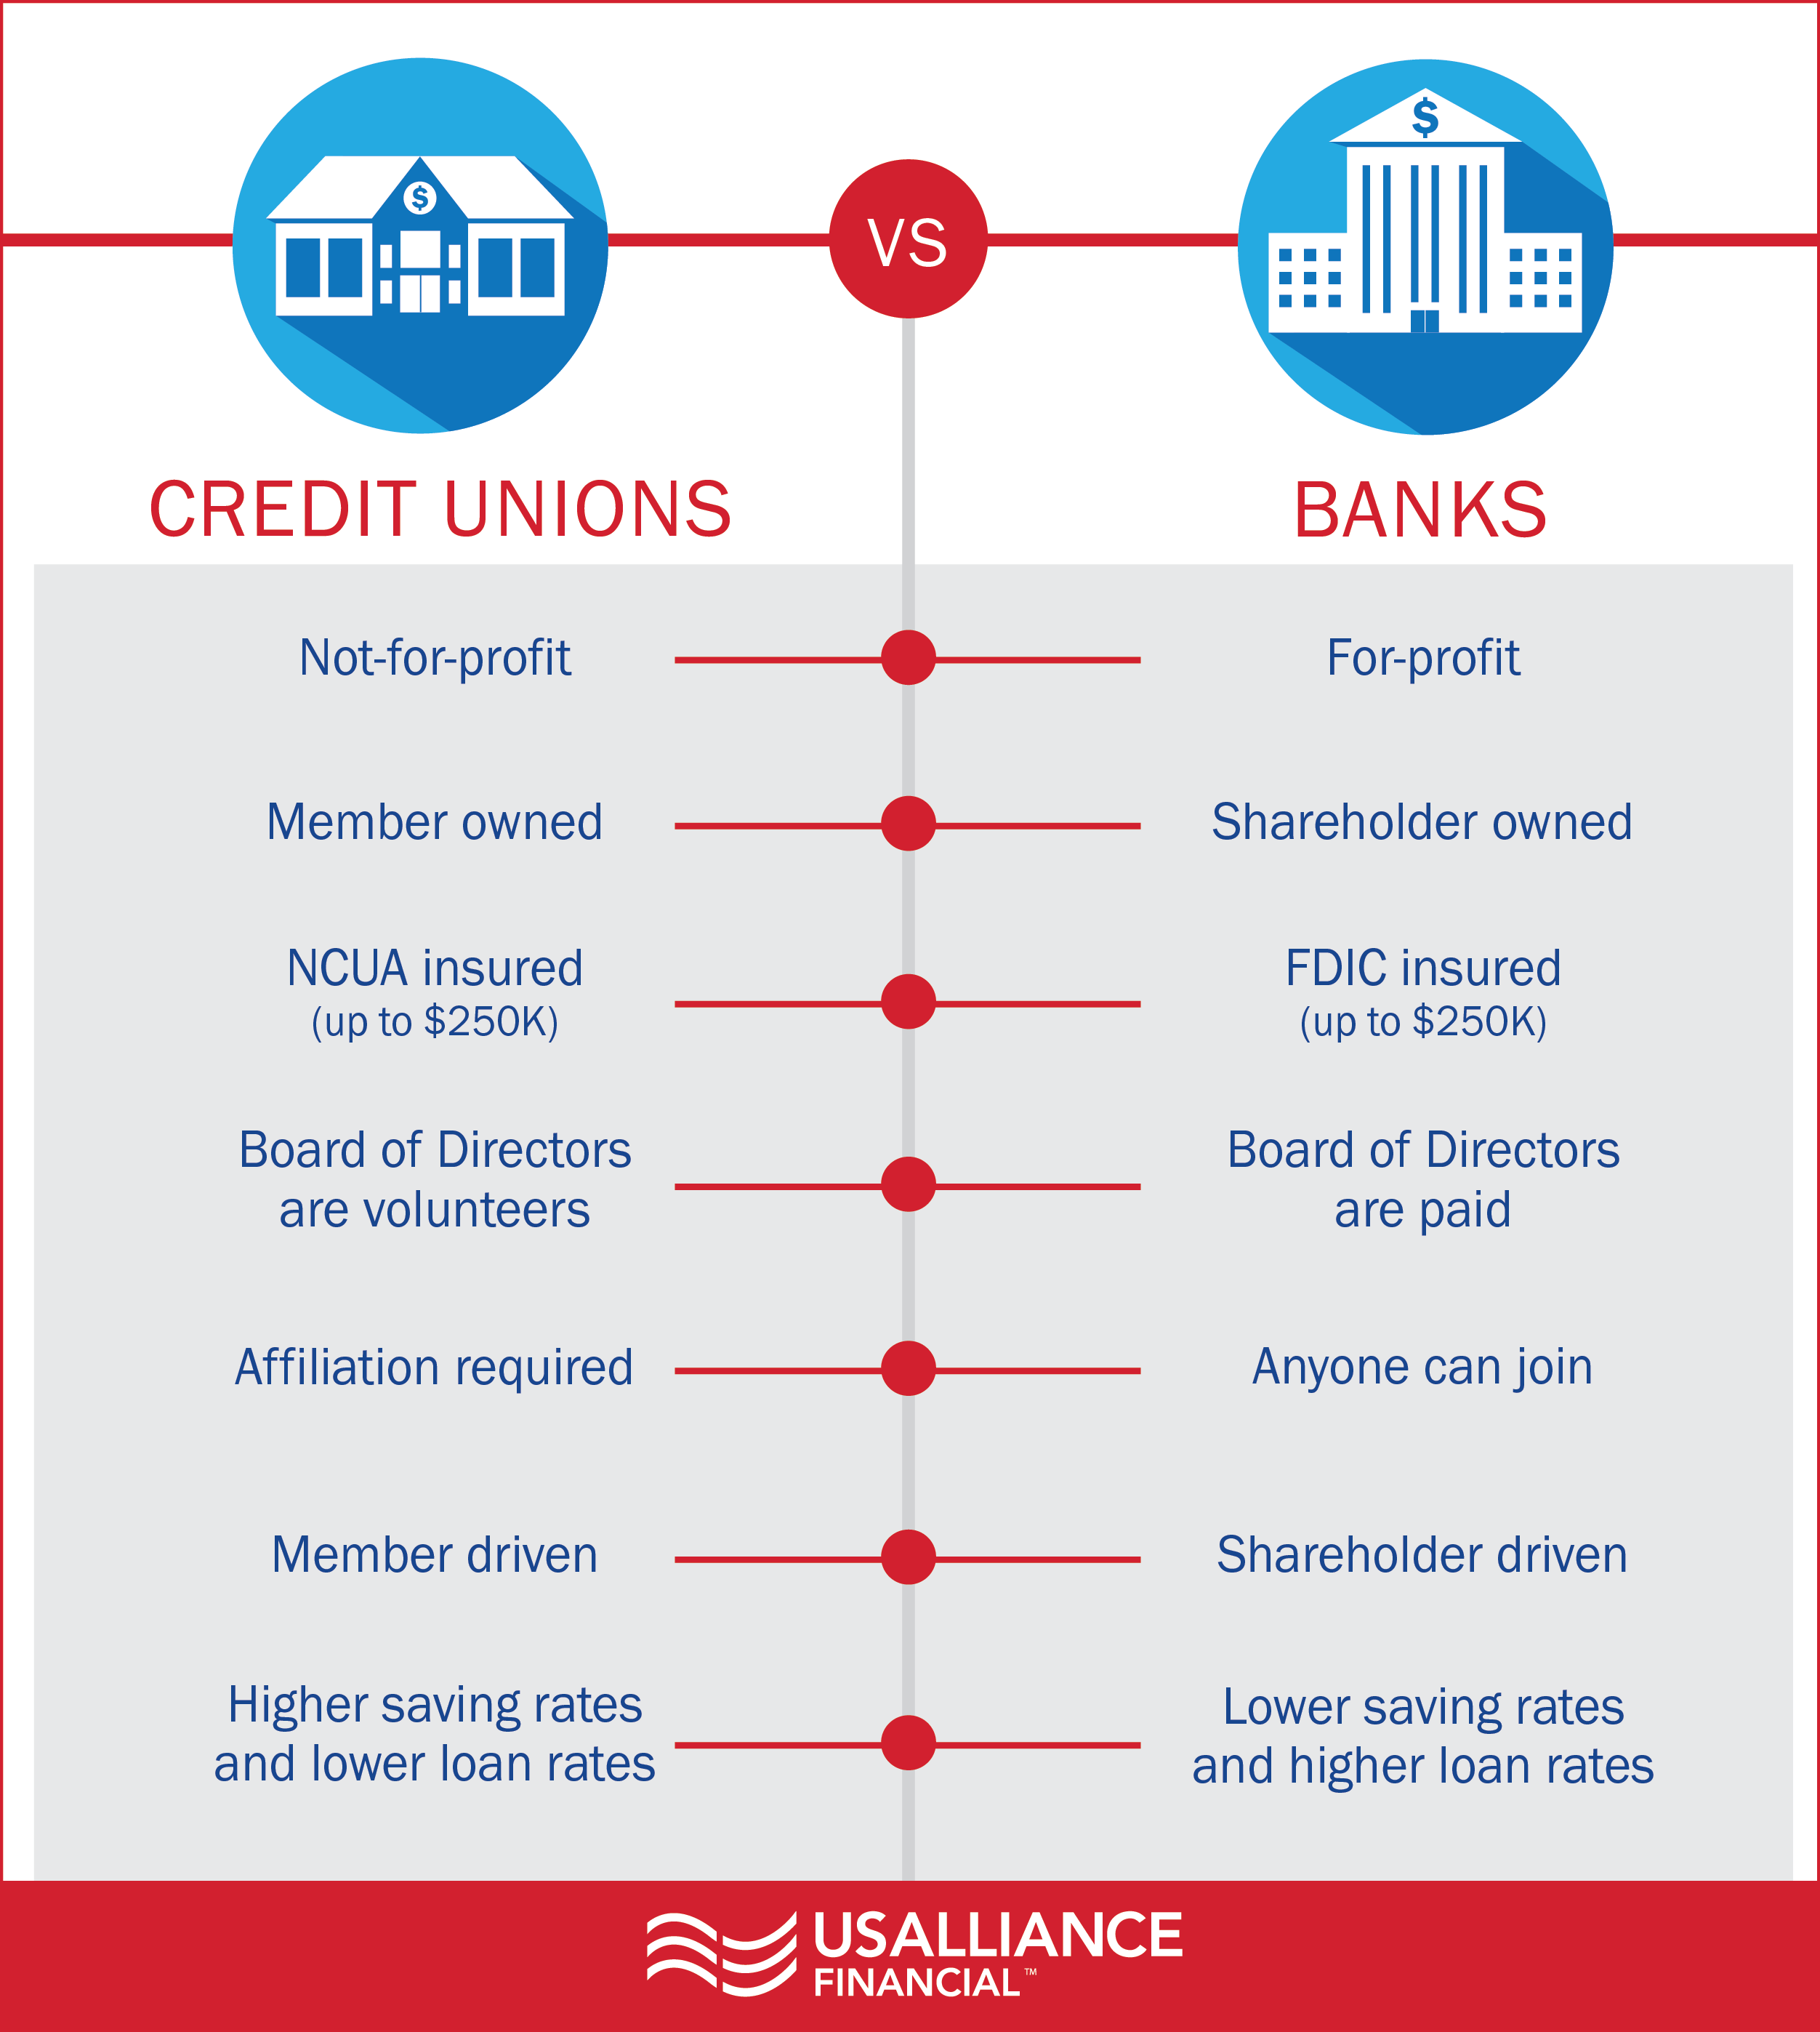 banks-vs-credit-unions-infographic.png